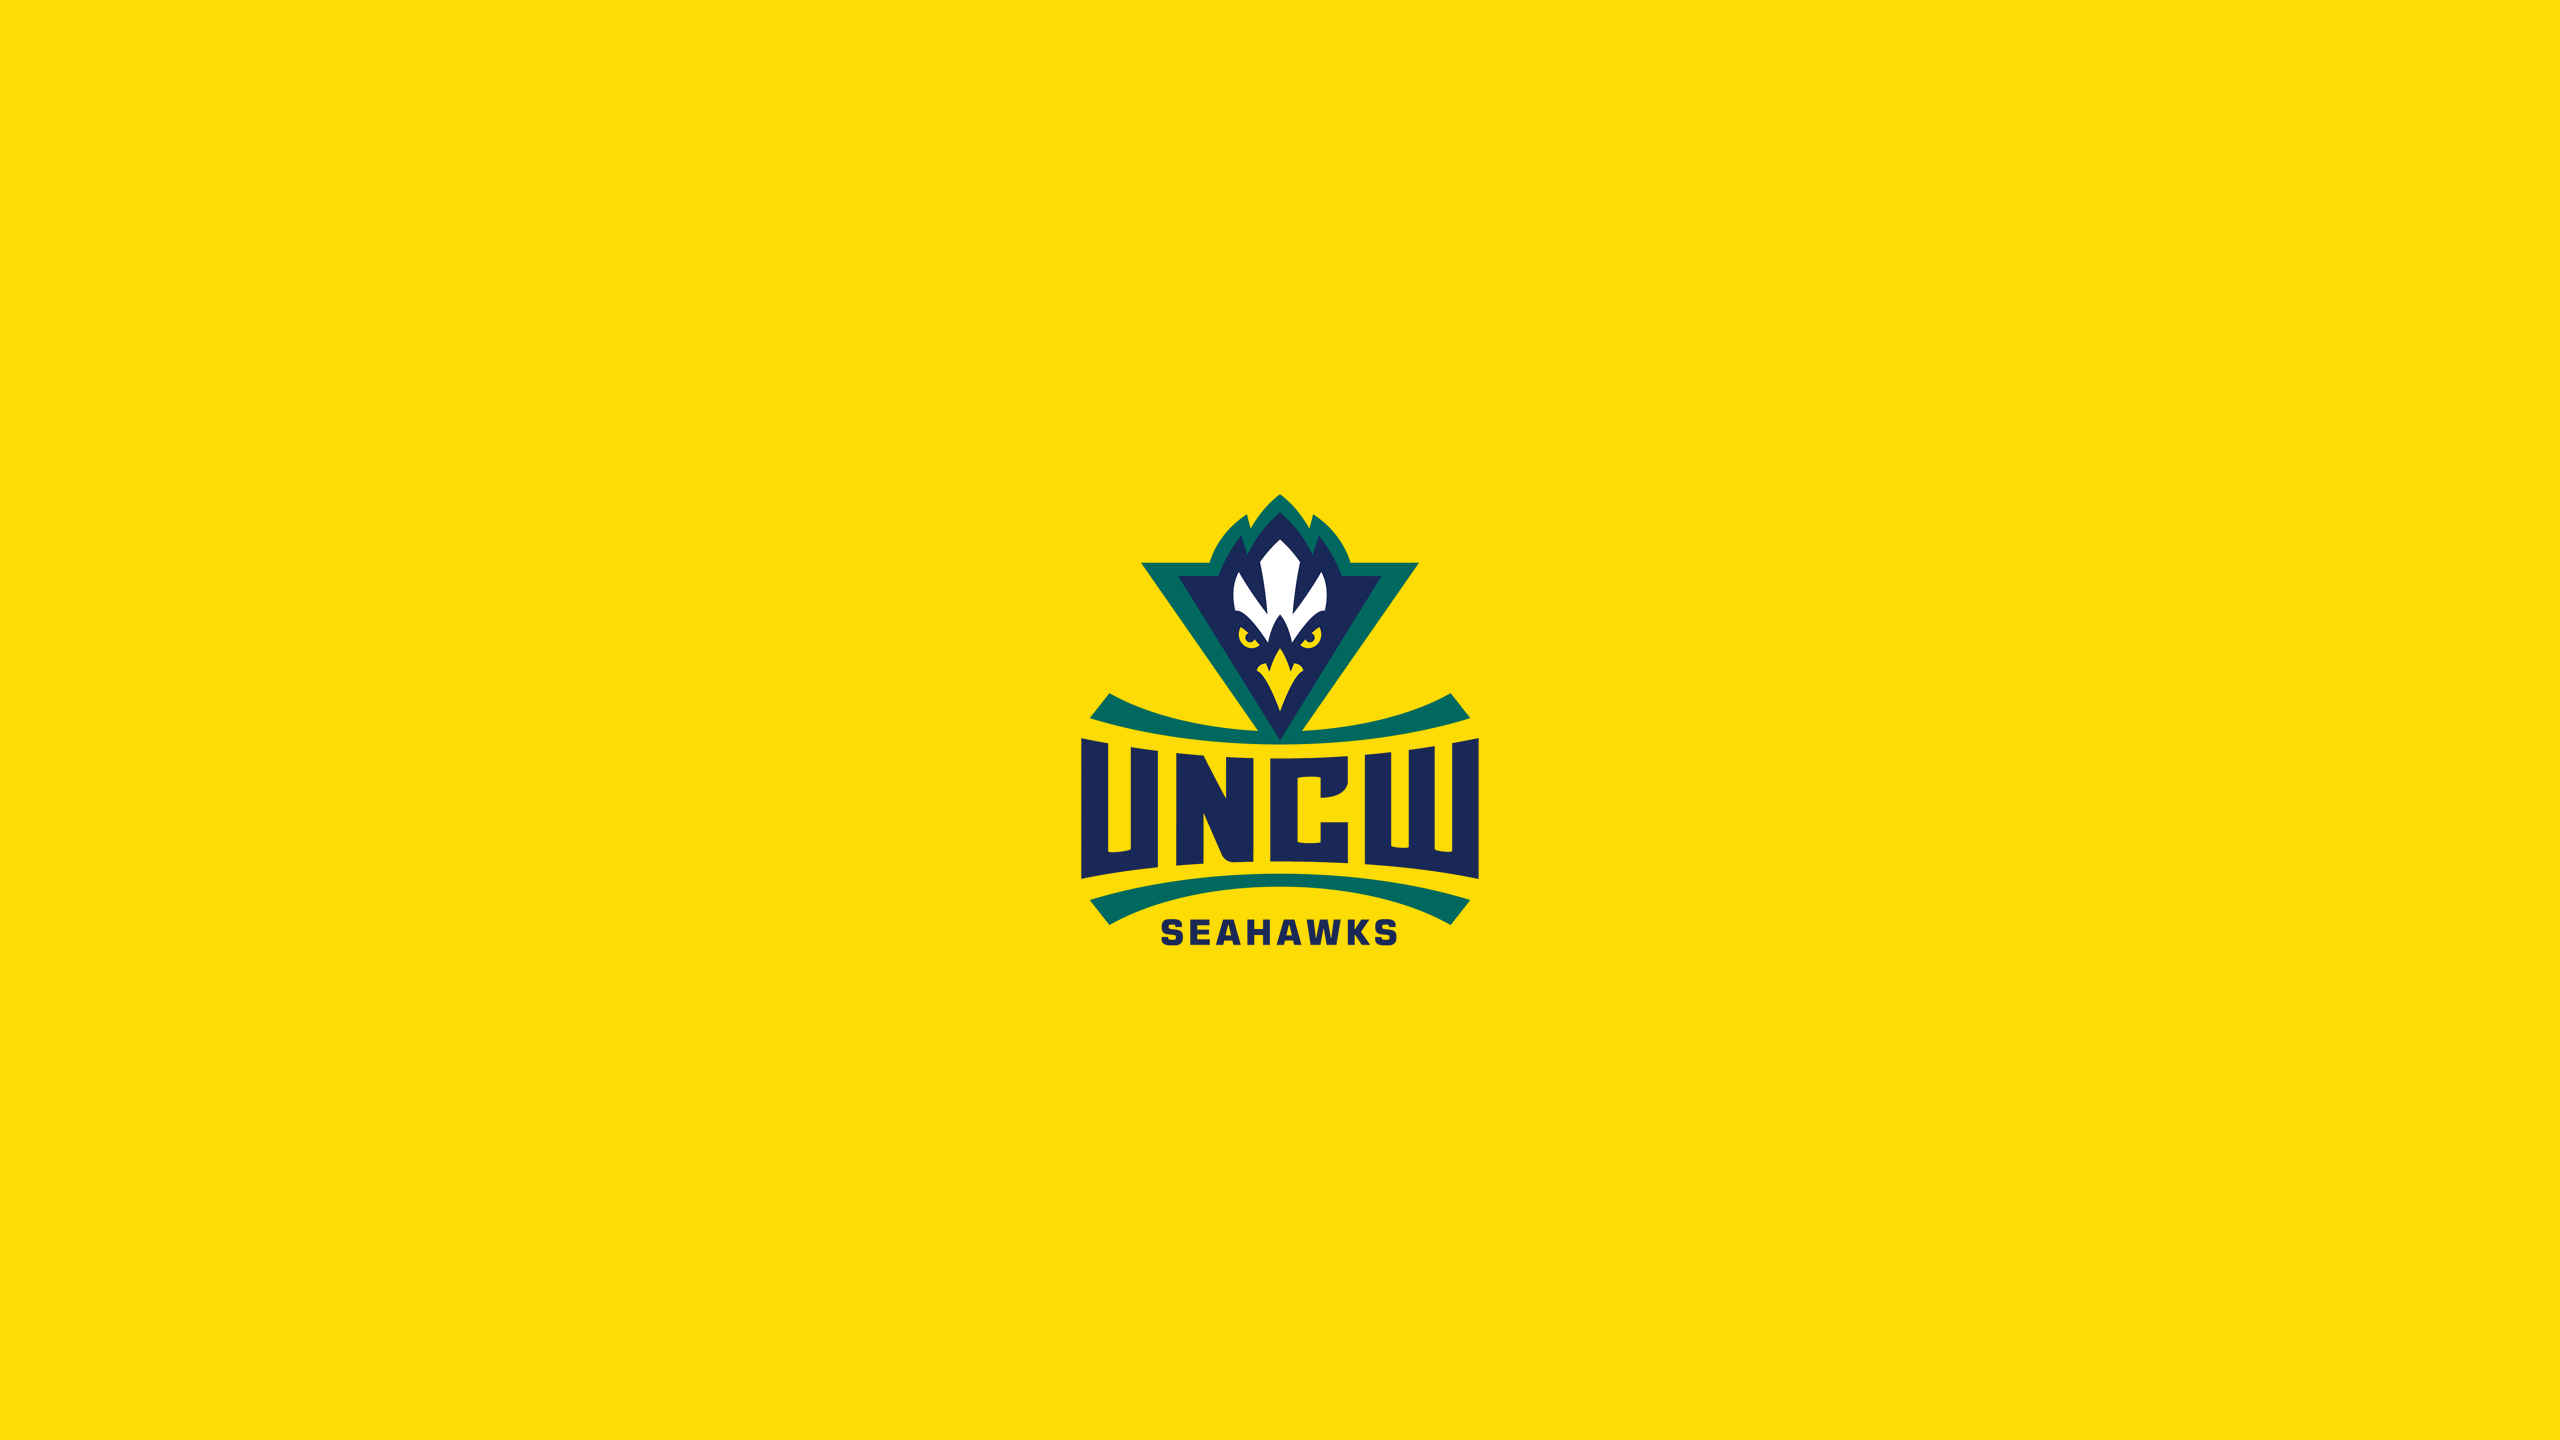 UNC-Wilmington Seahawks